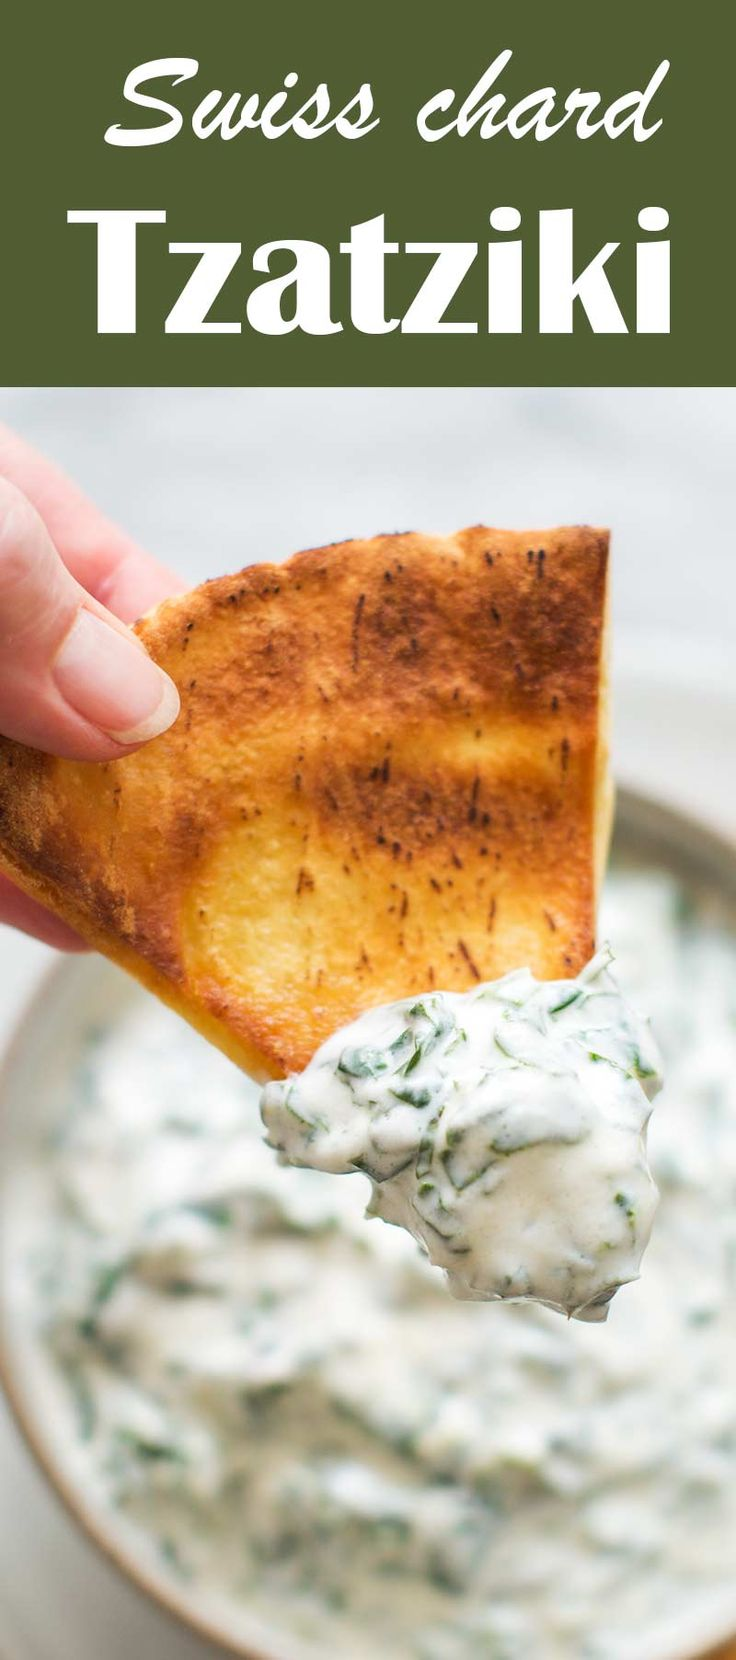 Delicious tzatziki yogurt dip with Swiss chard, mint, olive oil, lemon, and garlic. Great with pita chips!